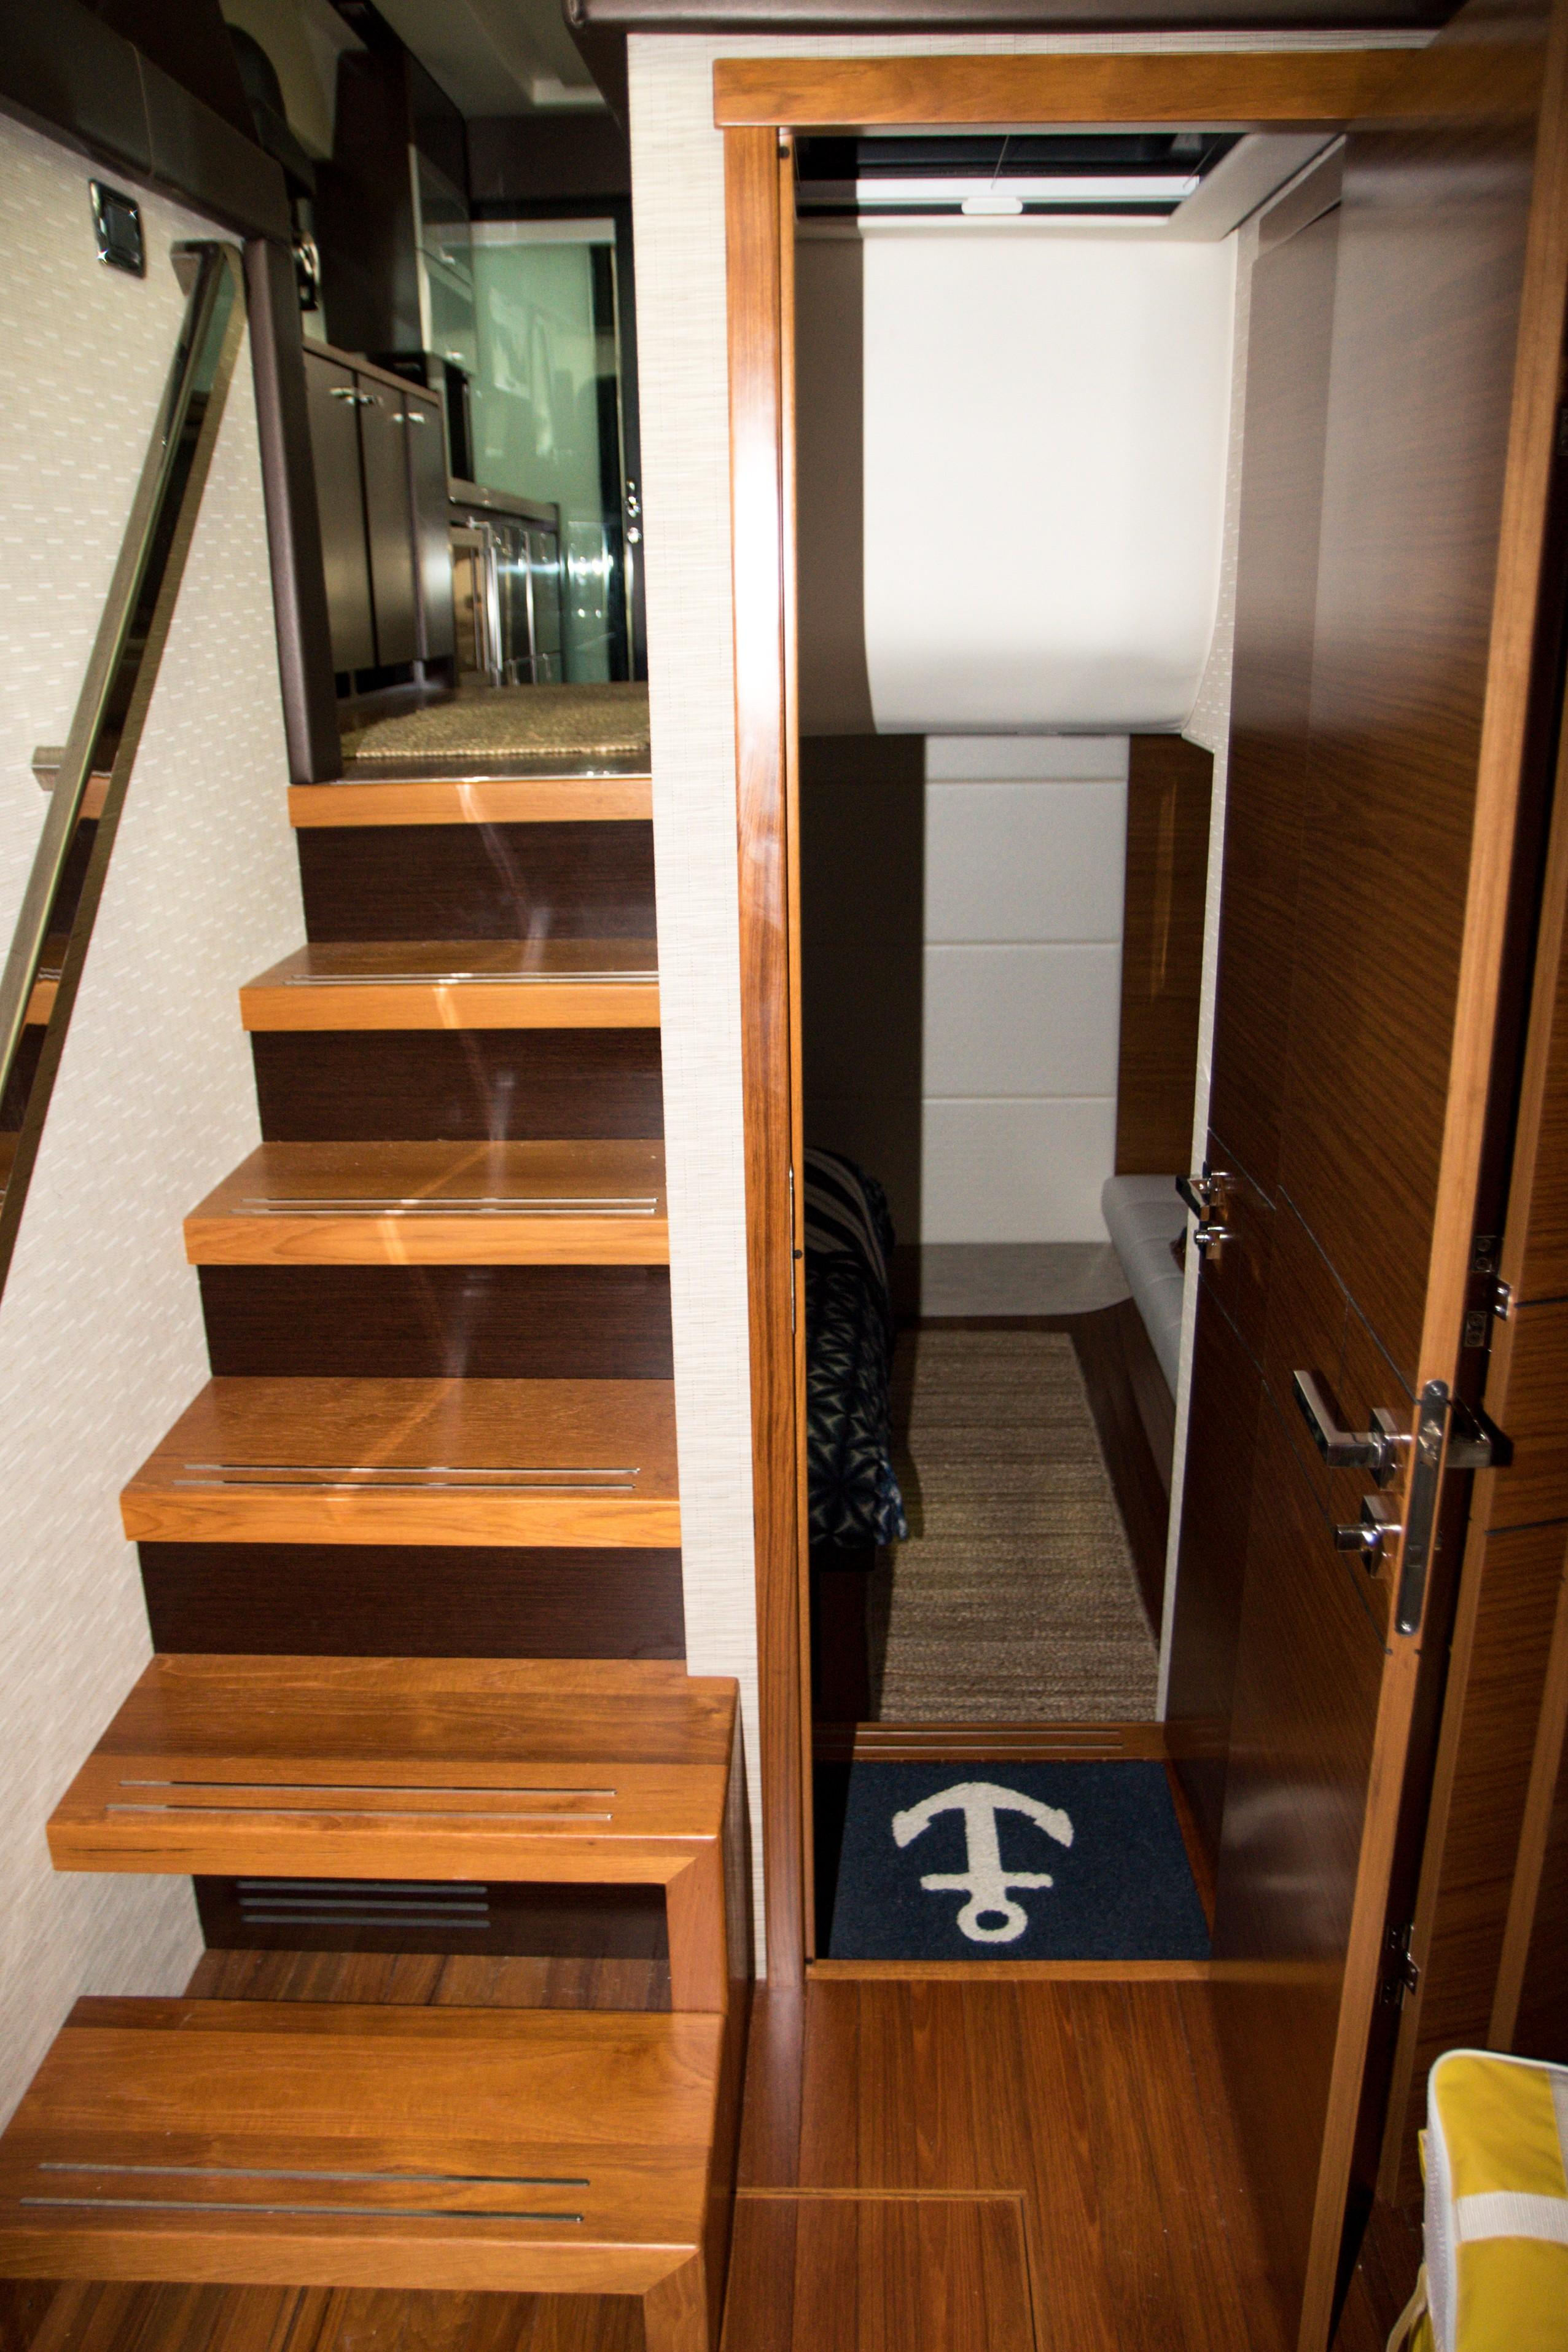 stateroom entry